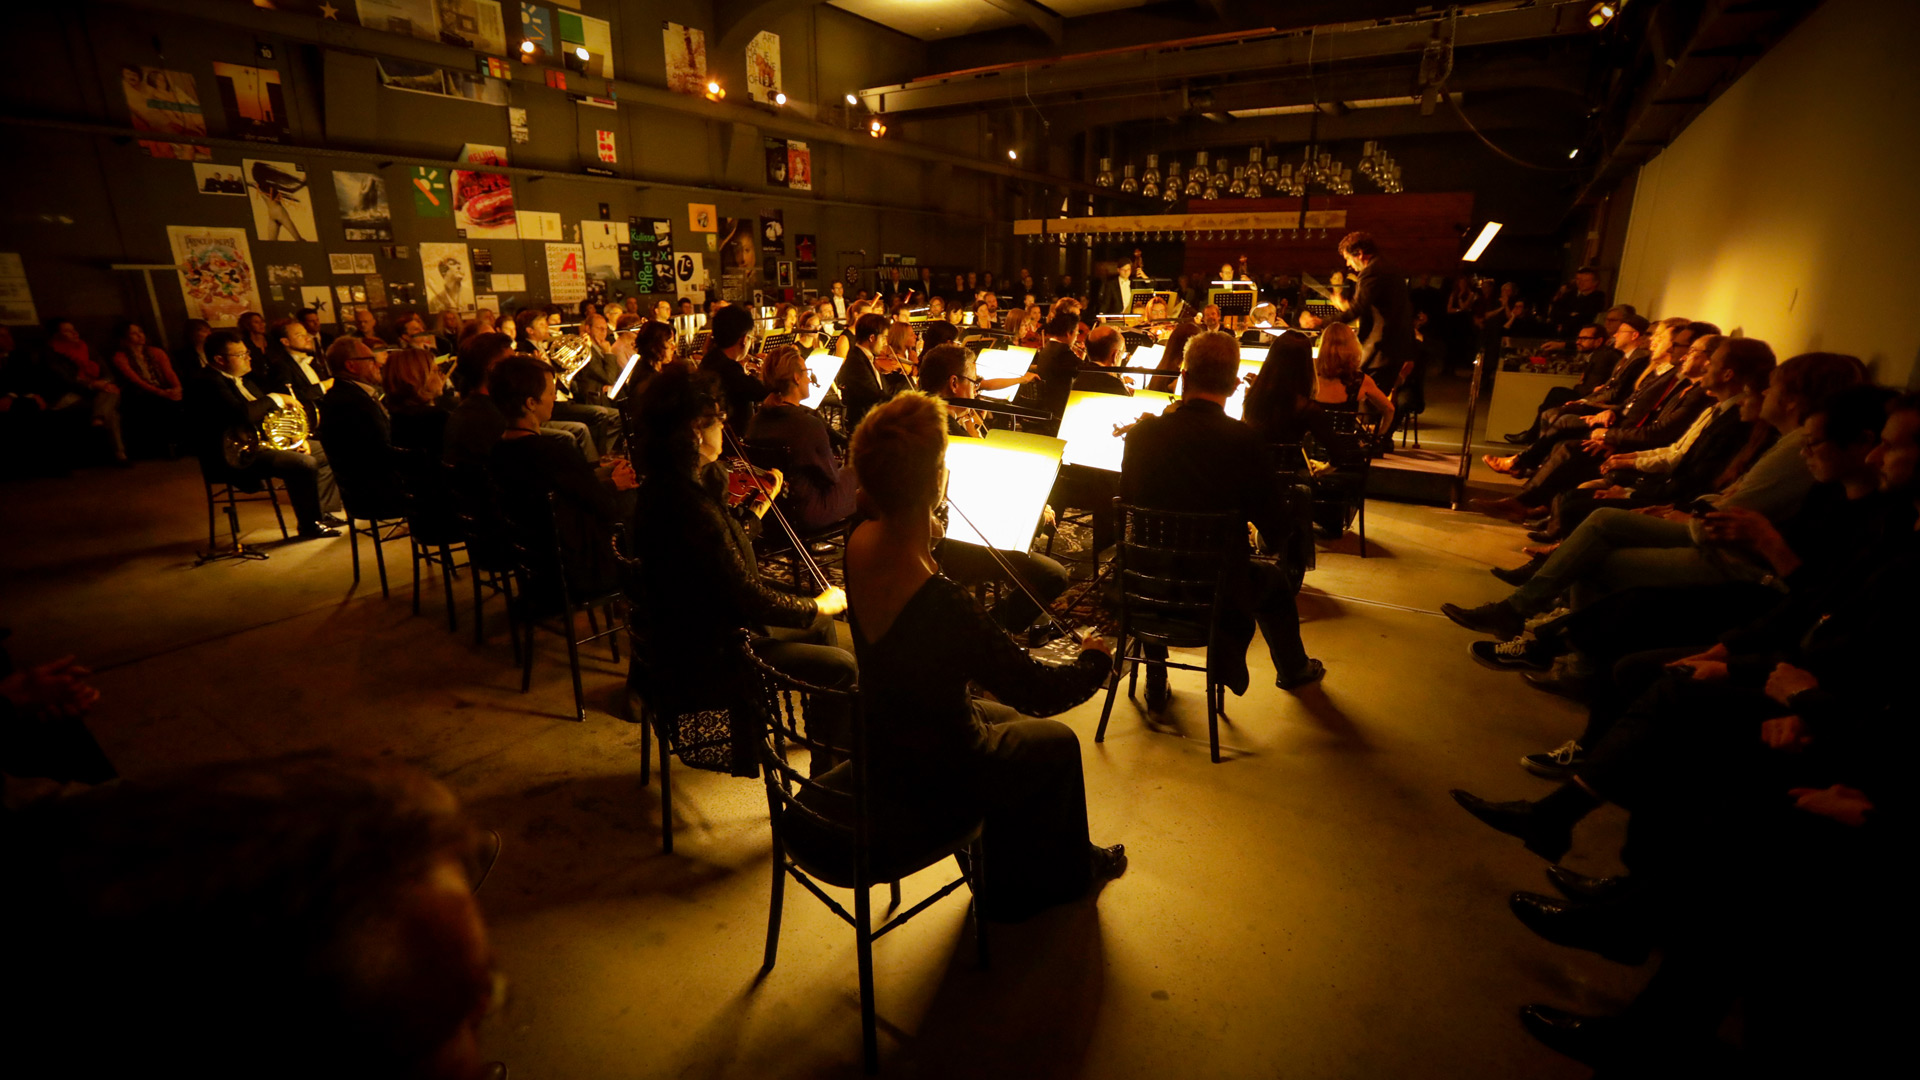 The Munich Symphony Orchestra sits in the former premises of the Blackspace agency and gives a concert. The audience either sits in between or at the side.